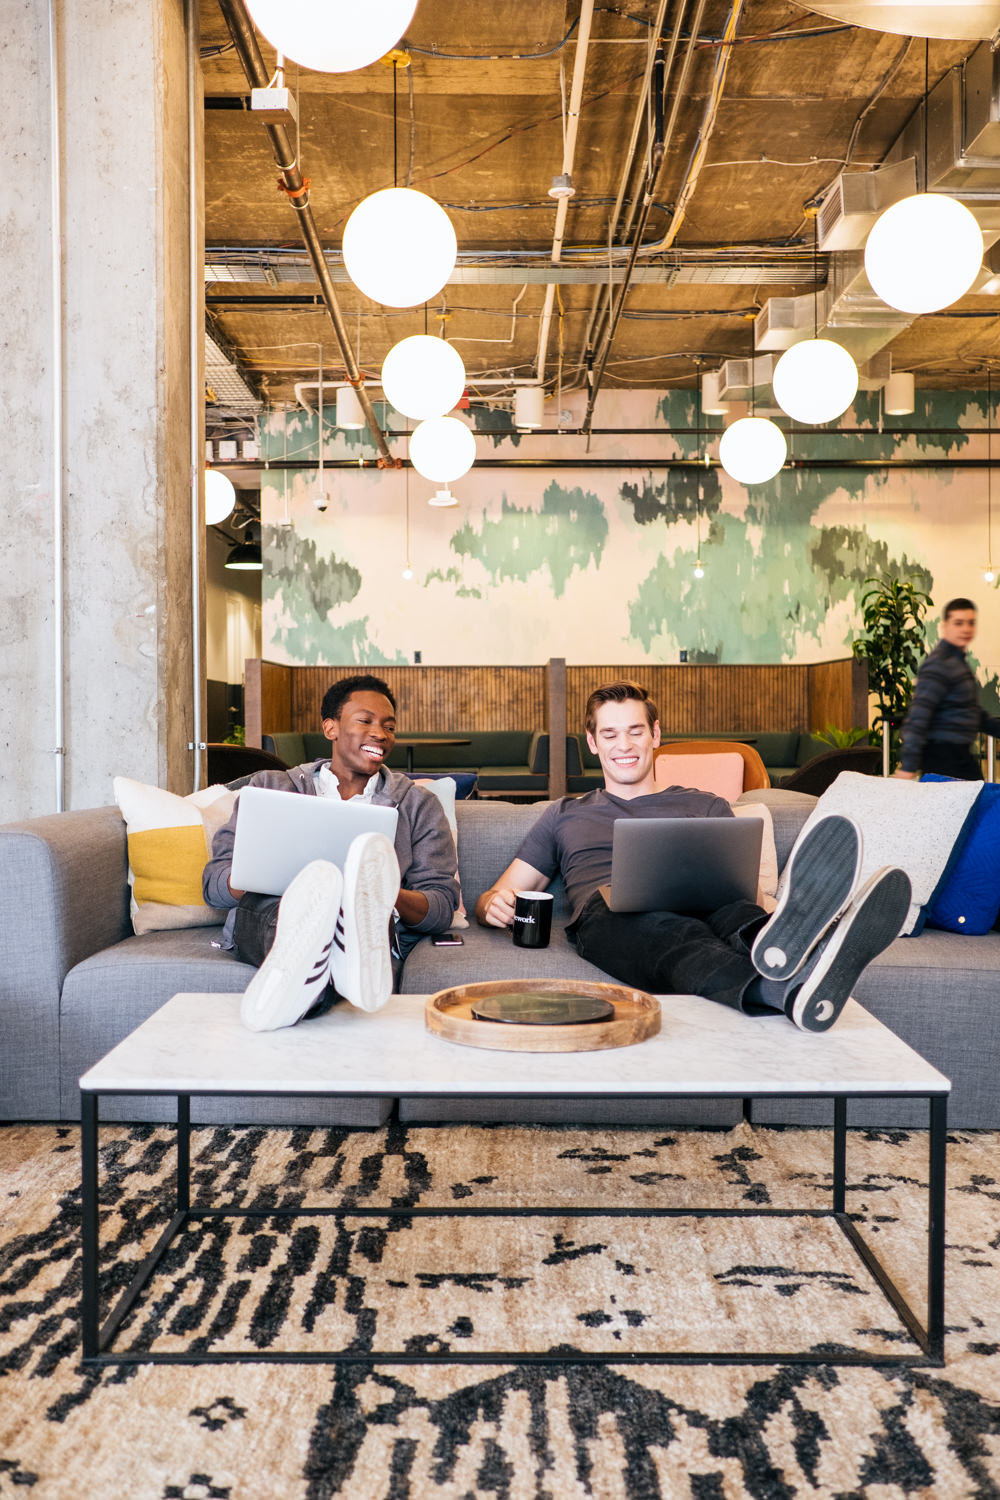 Photoguzman_WeWork_Commercial_Photography_R_web-18.jpg